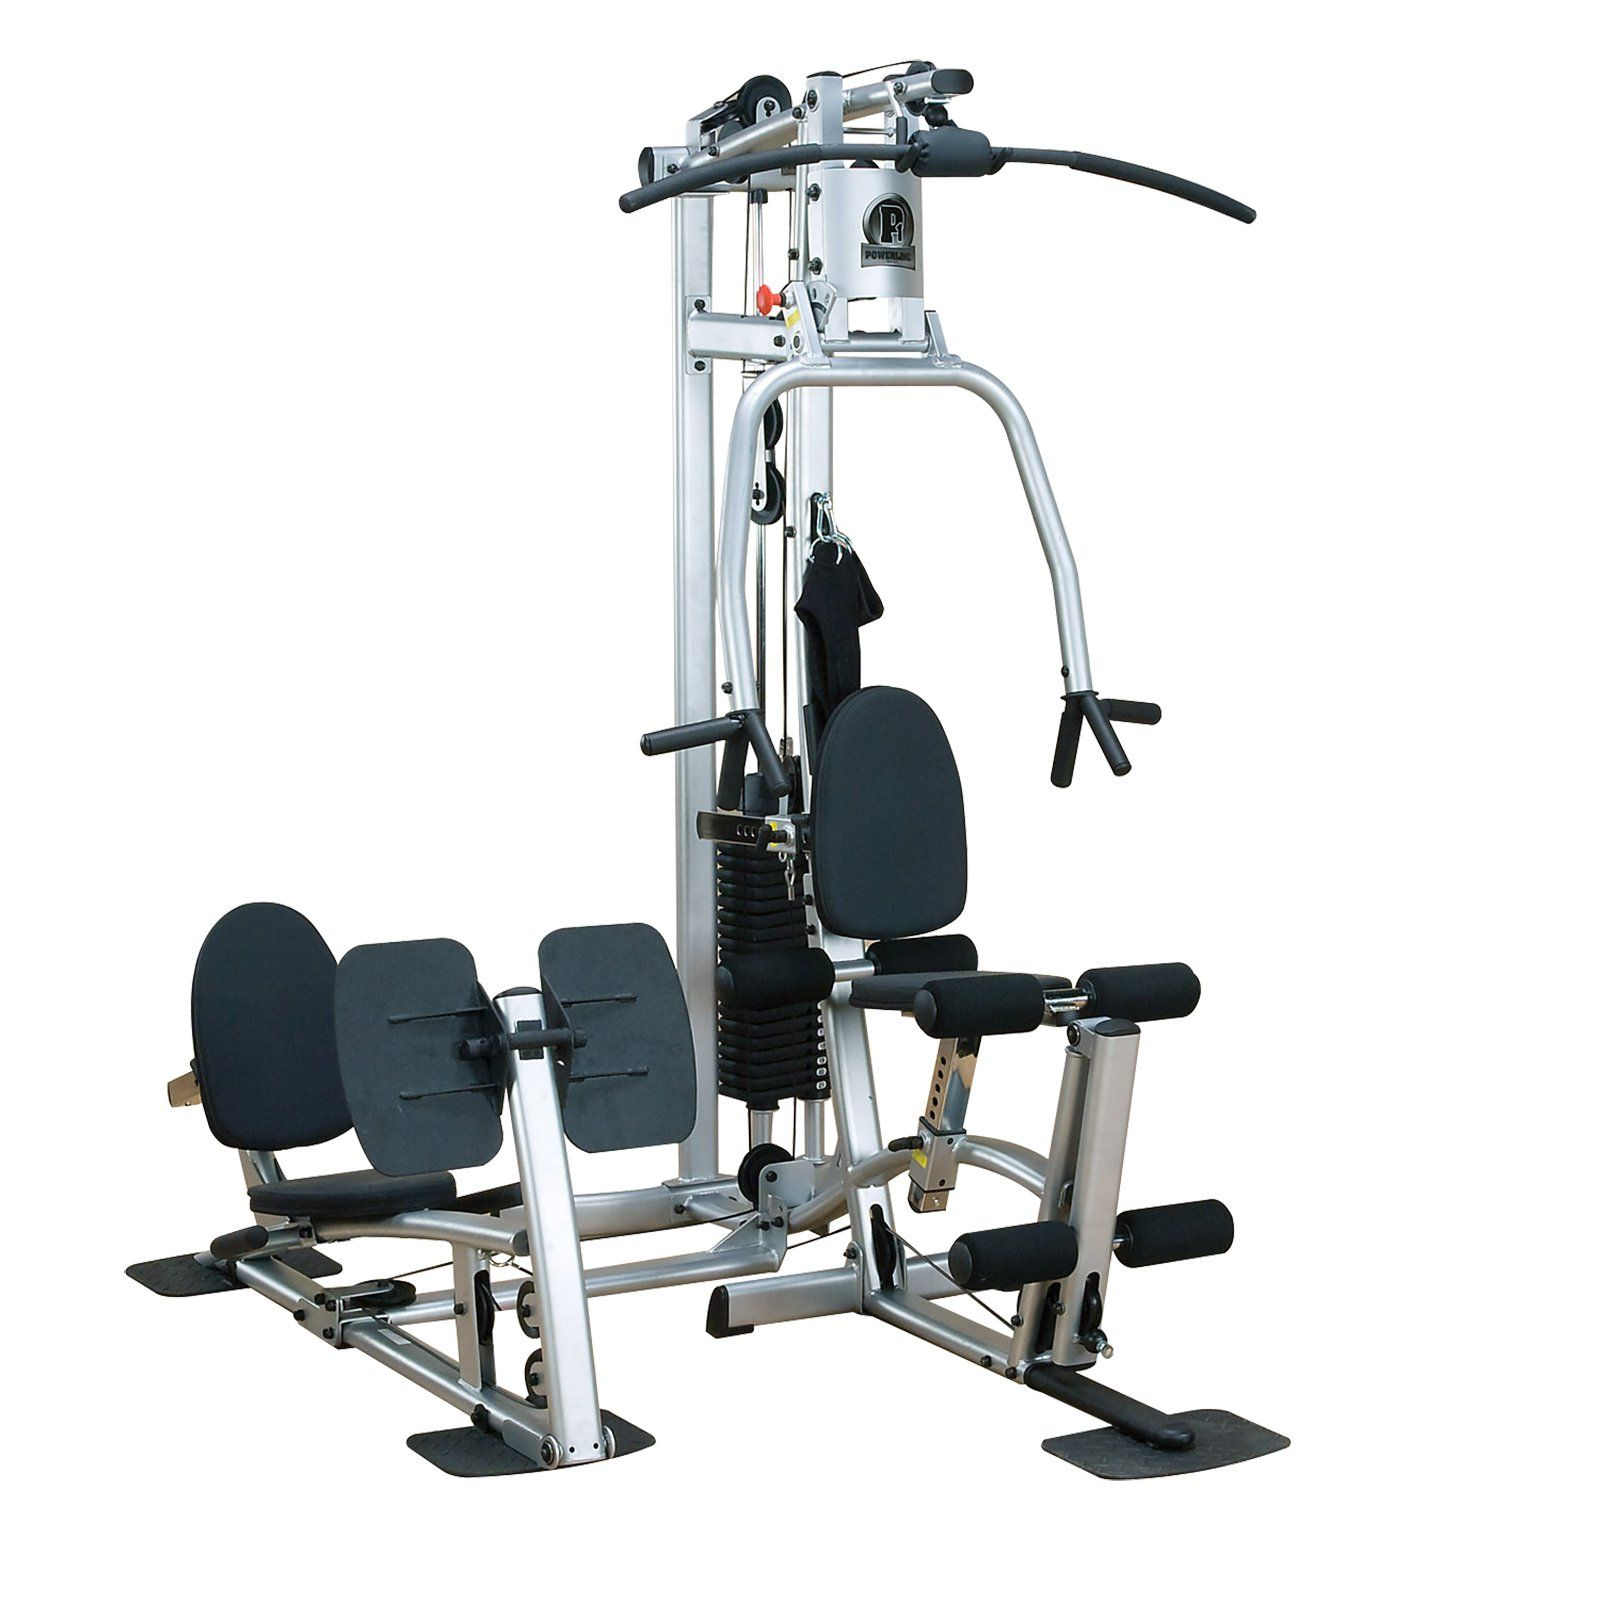 a653421ce00 Powerline P2X Home Gym in 2019